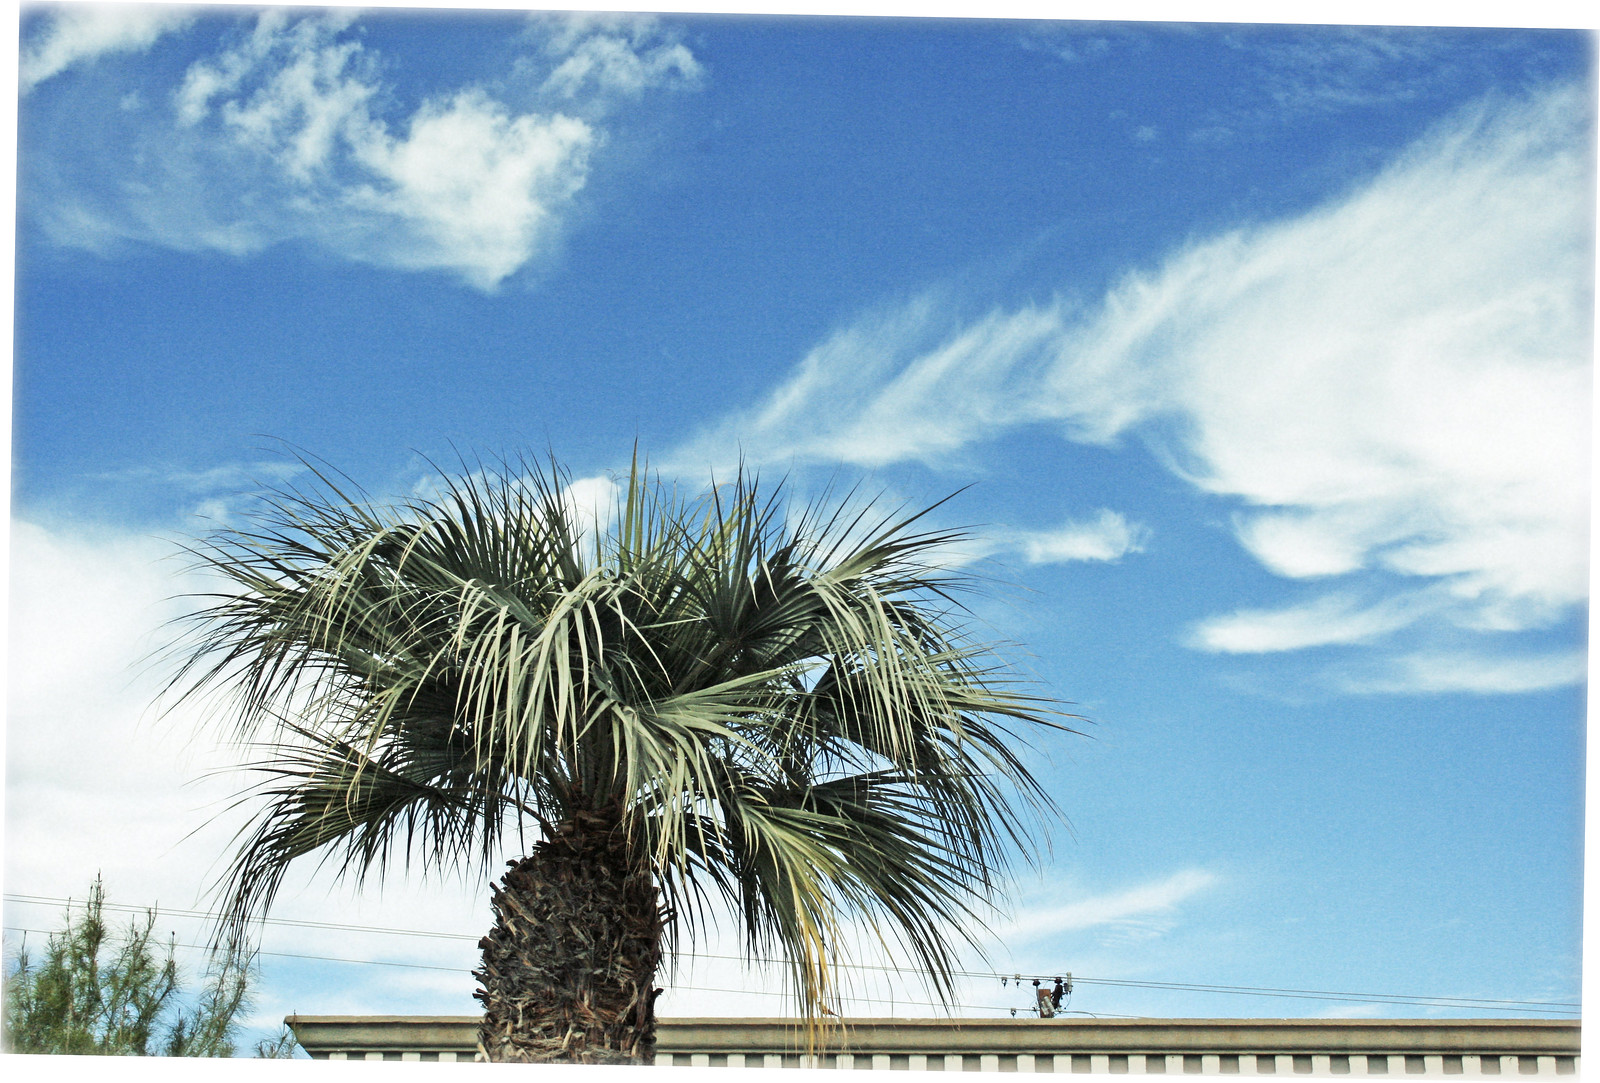 Palm Tree, Electric Lines and Clouds, Scottsdale